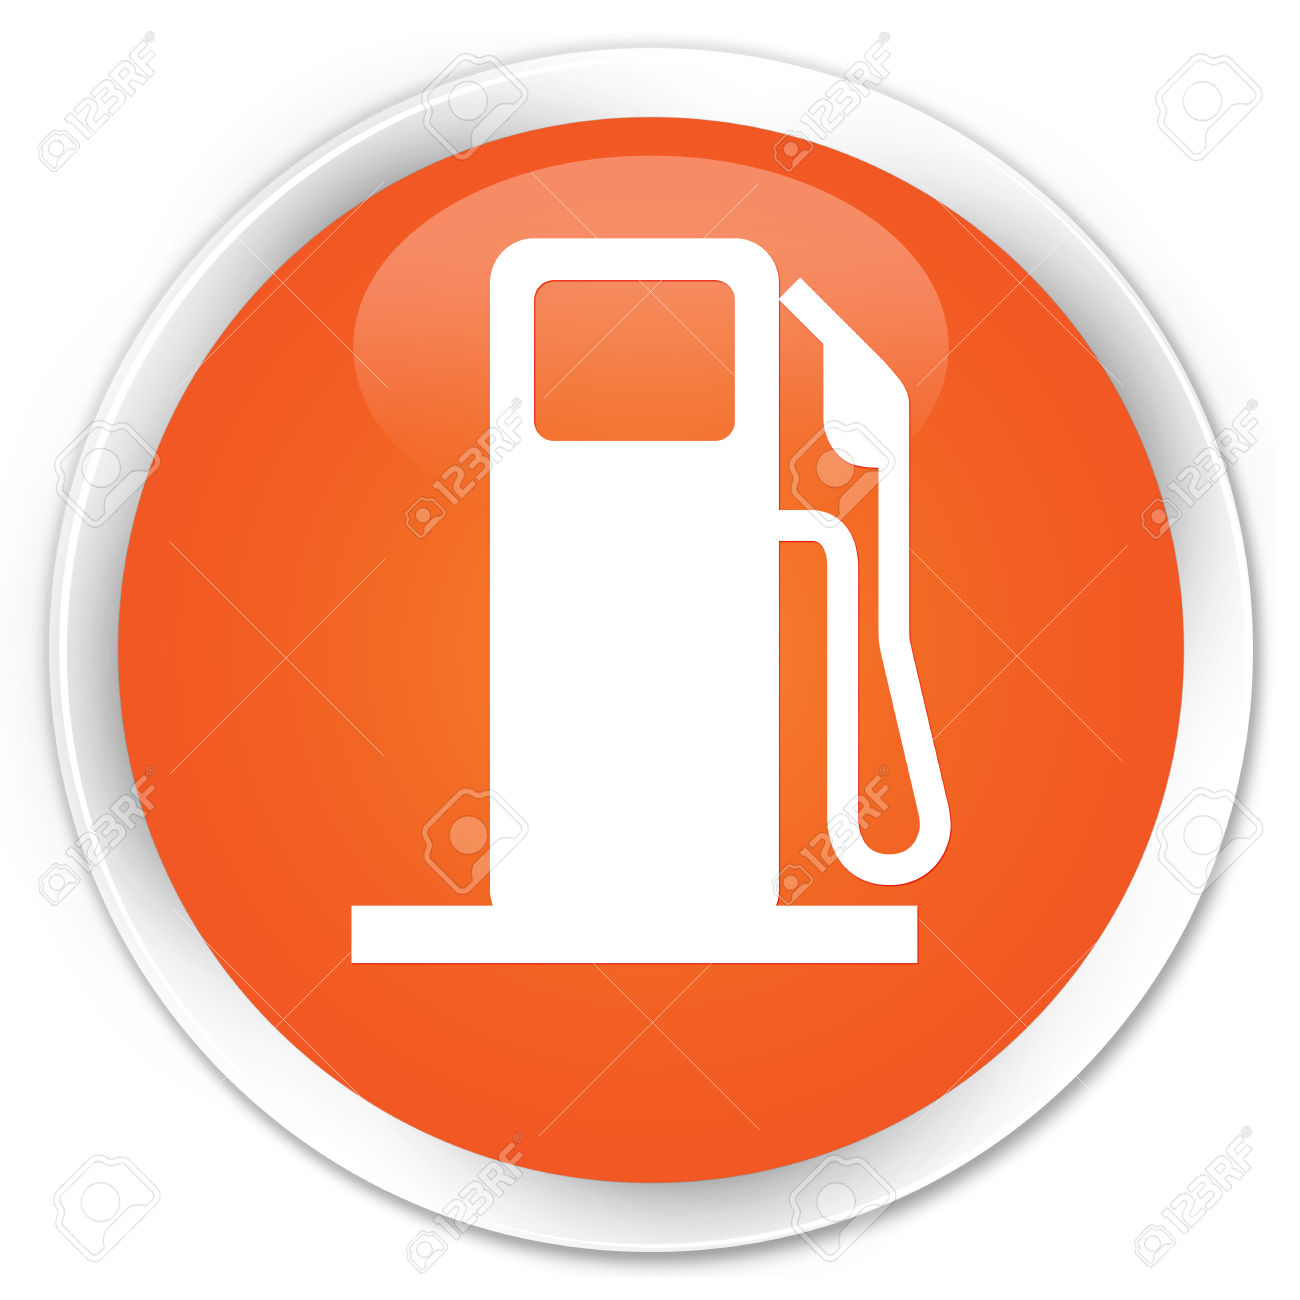 Fuel Dispenser Icon Orange Glossy Round Button Stock Photo.